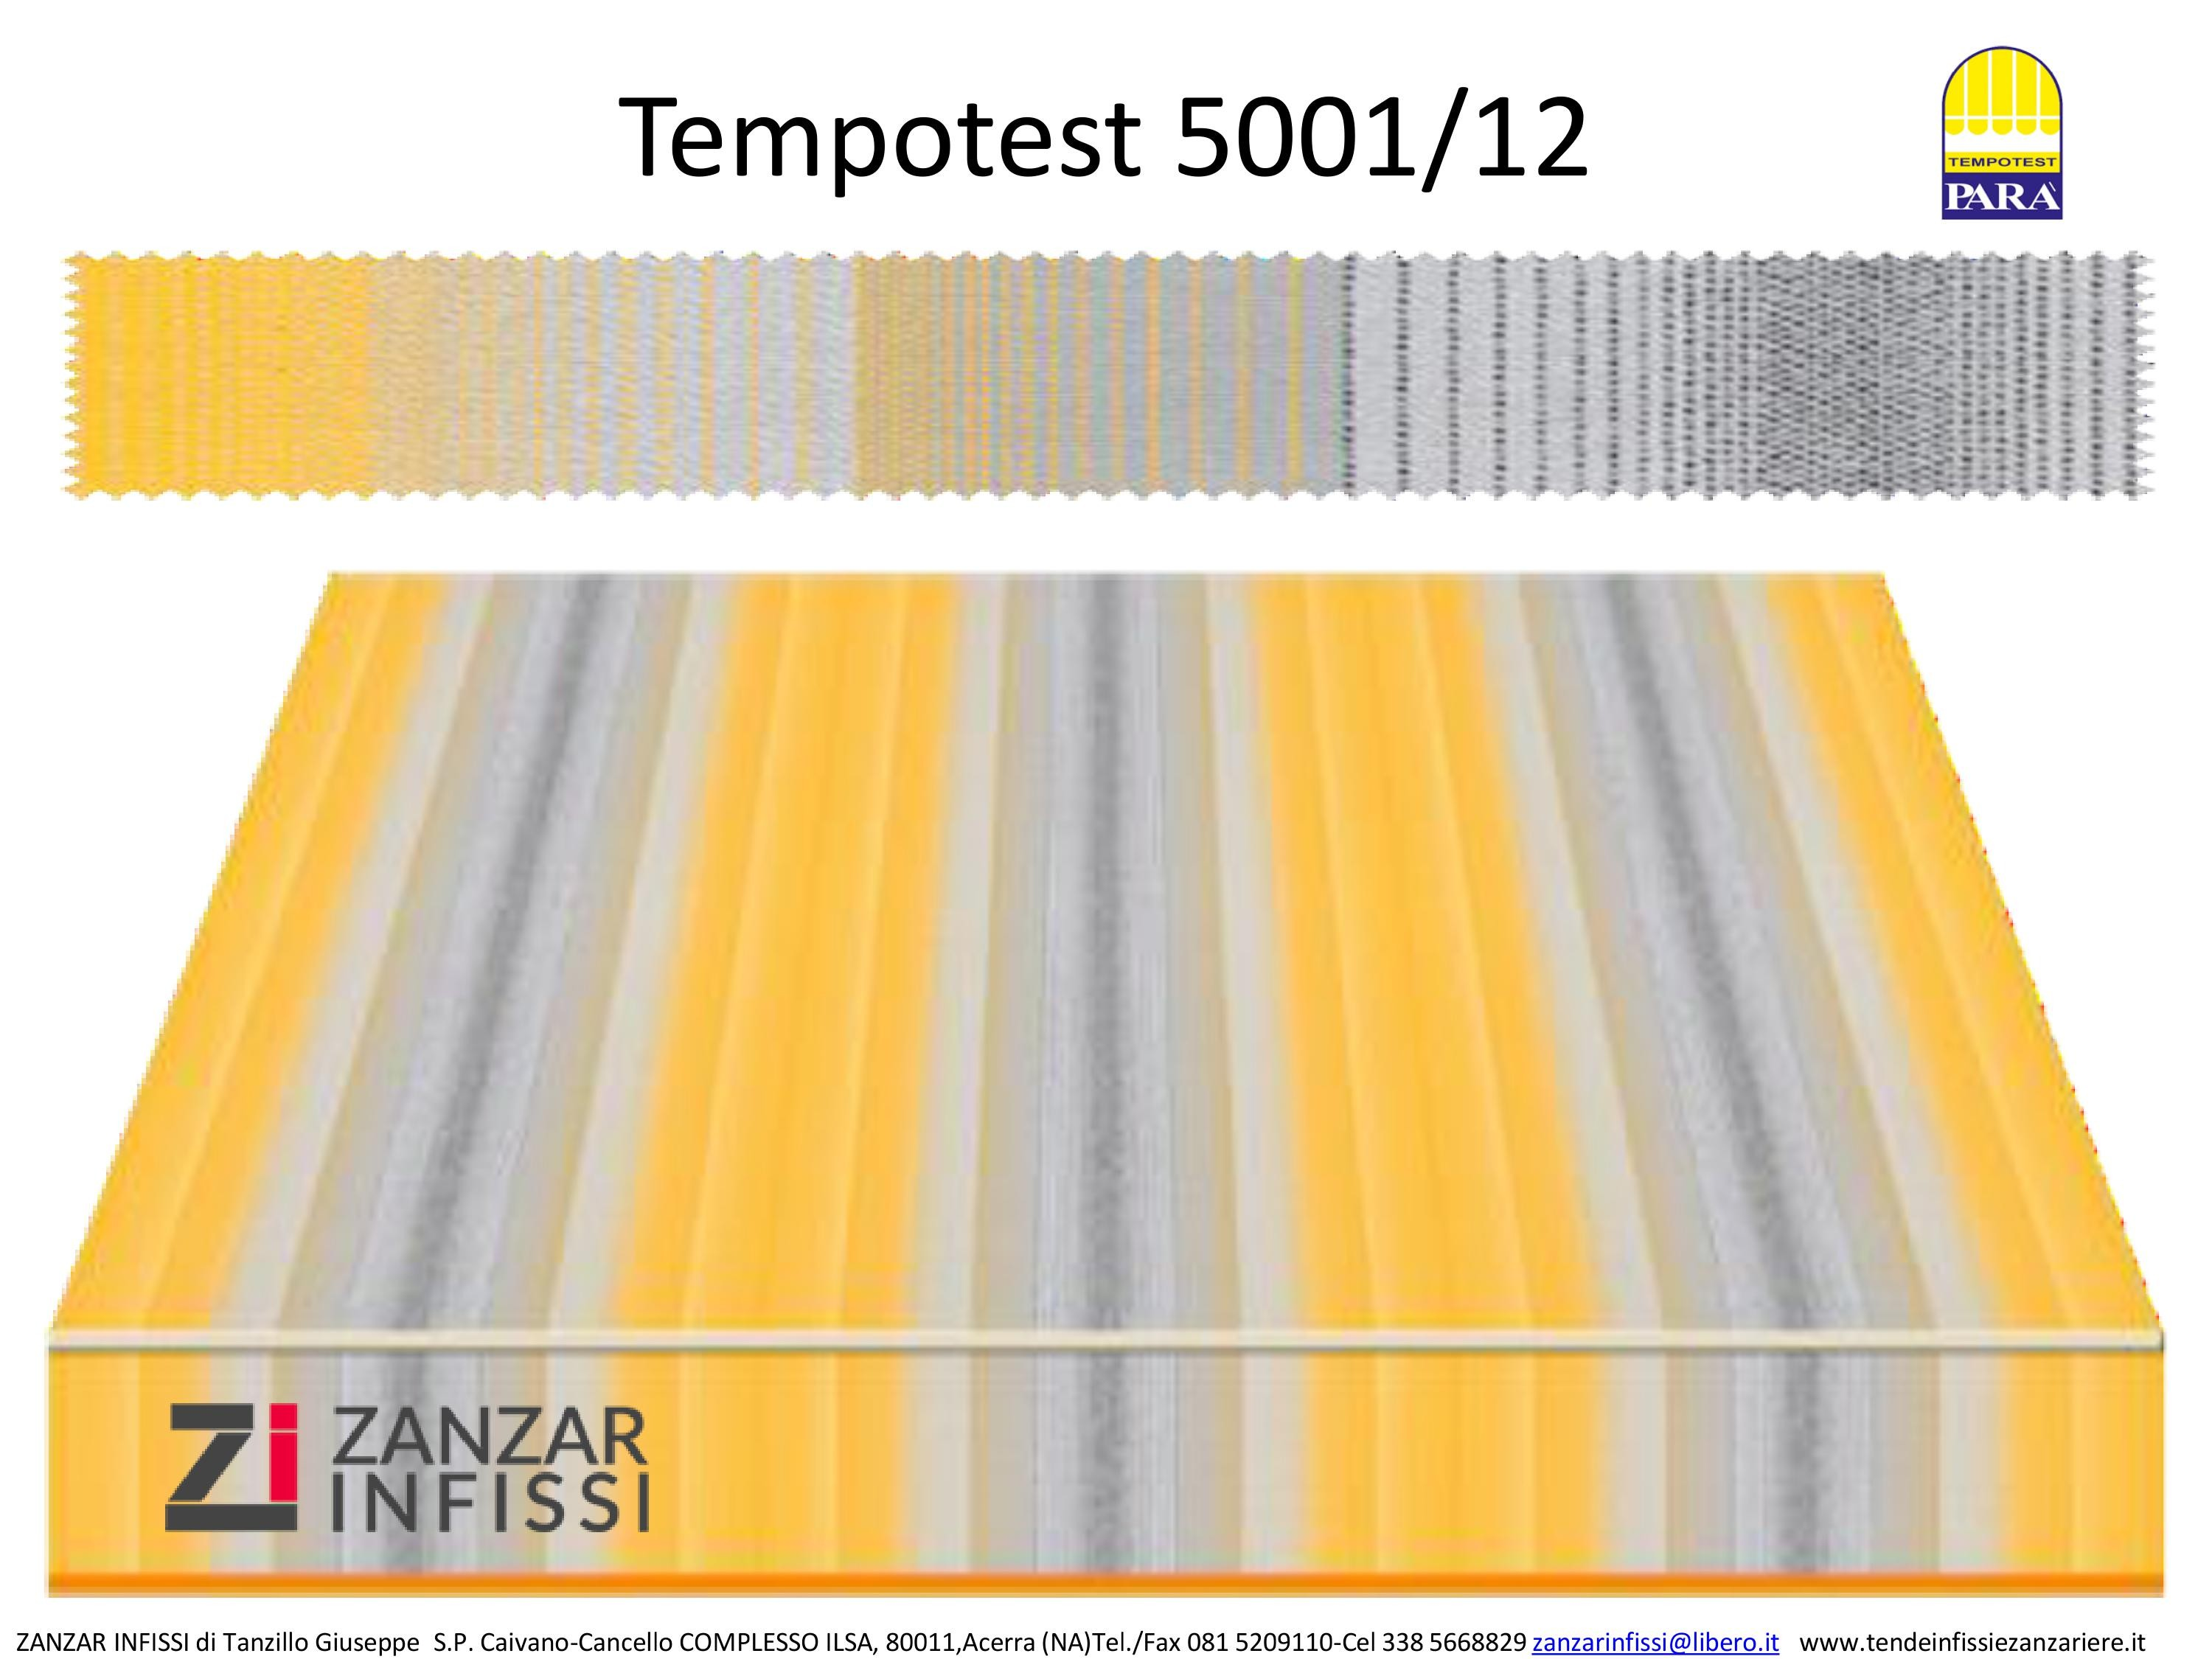 Tempotest 5001/12